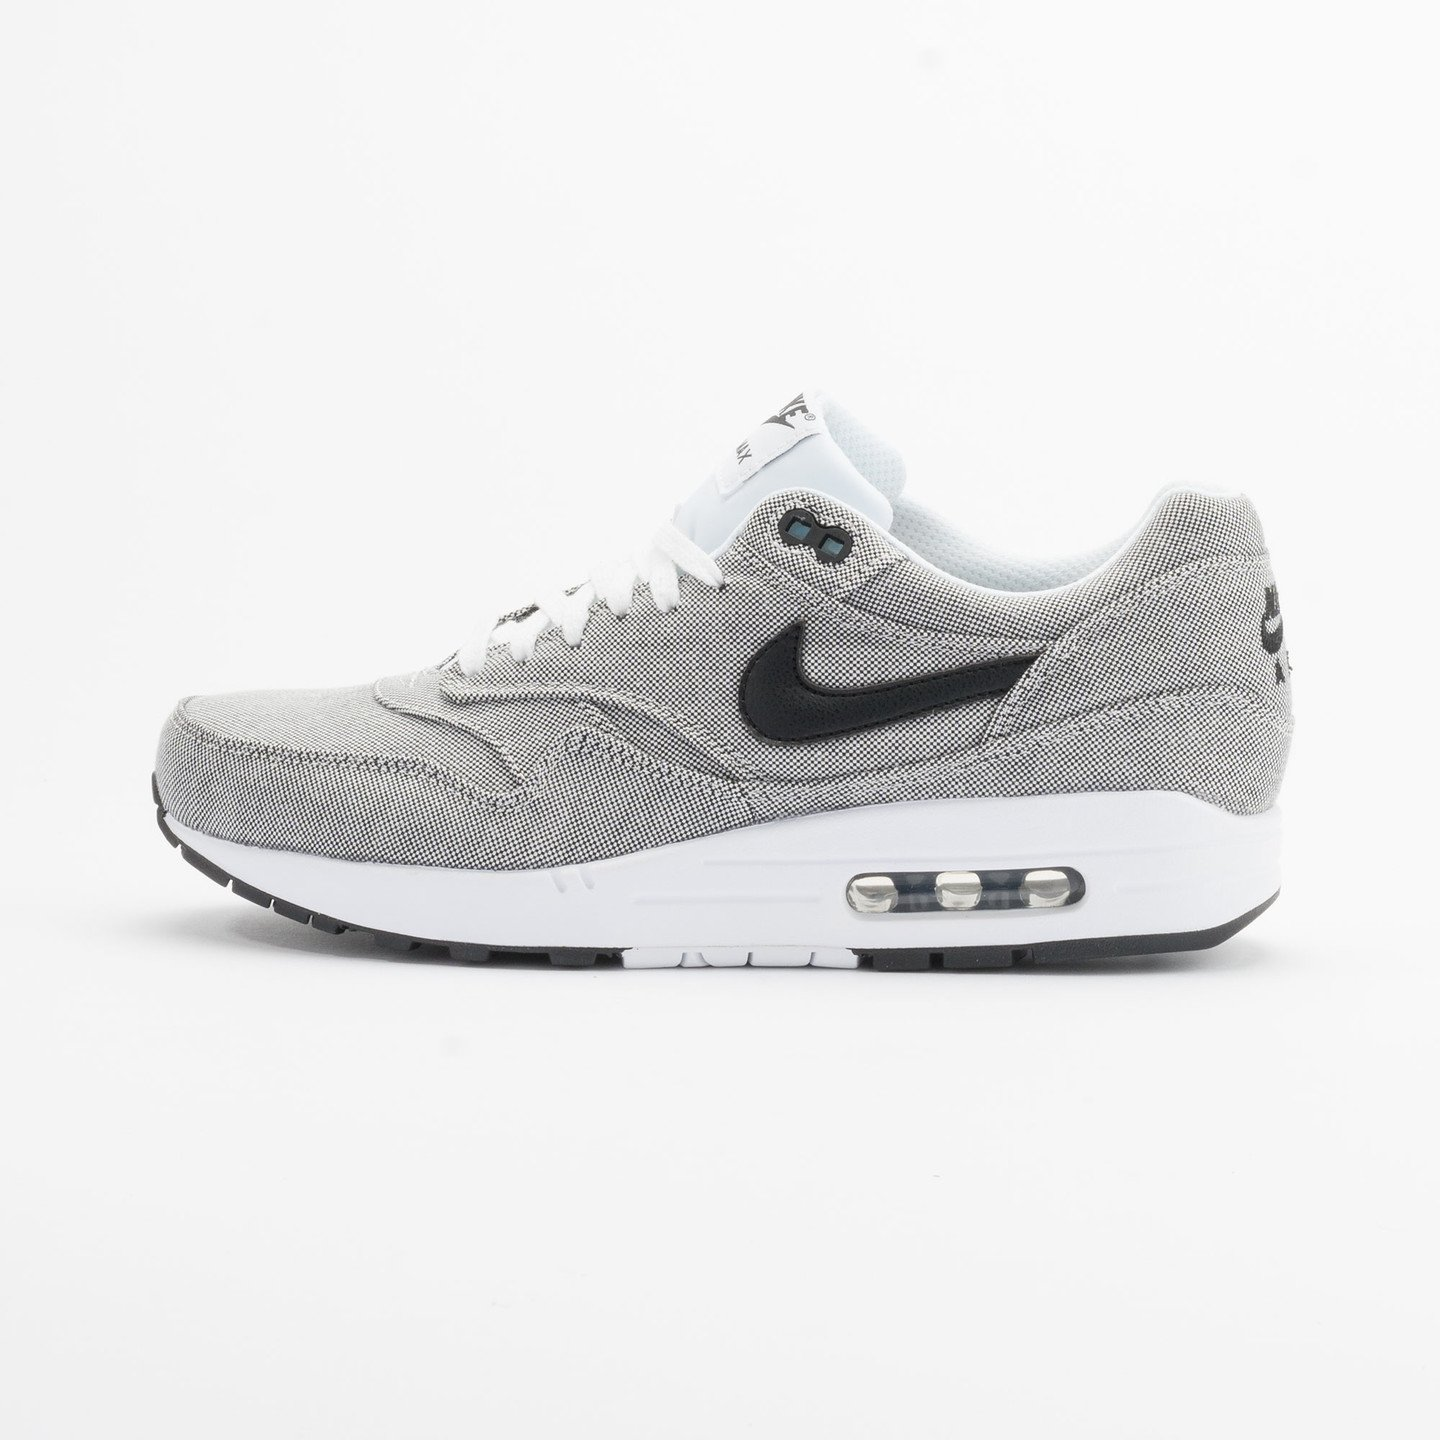 Nike Air Max 1 Prm Picknick Pack Black/White 512033-103-39